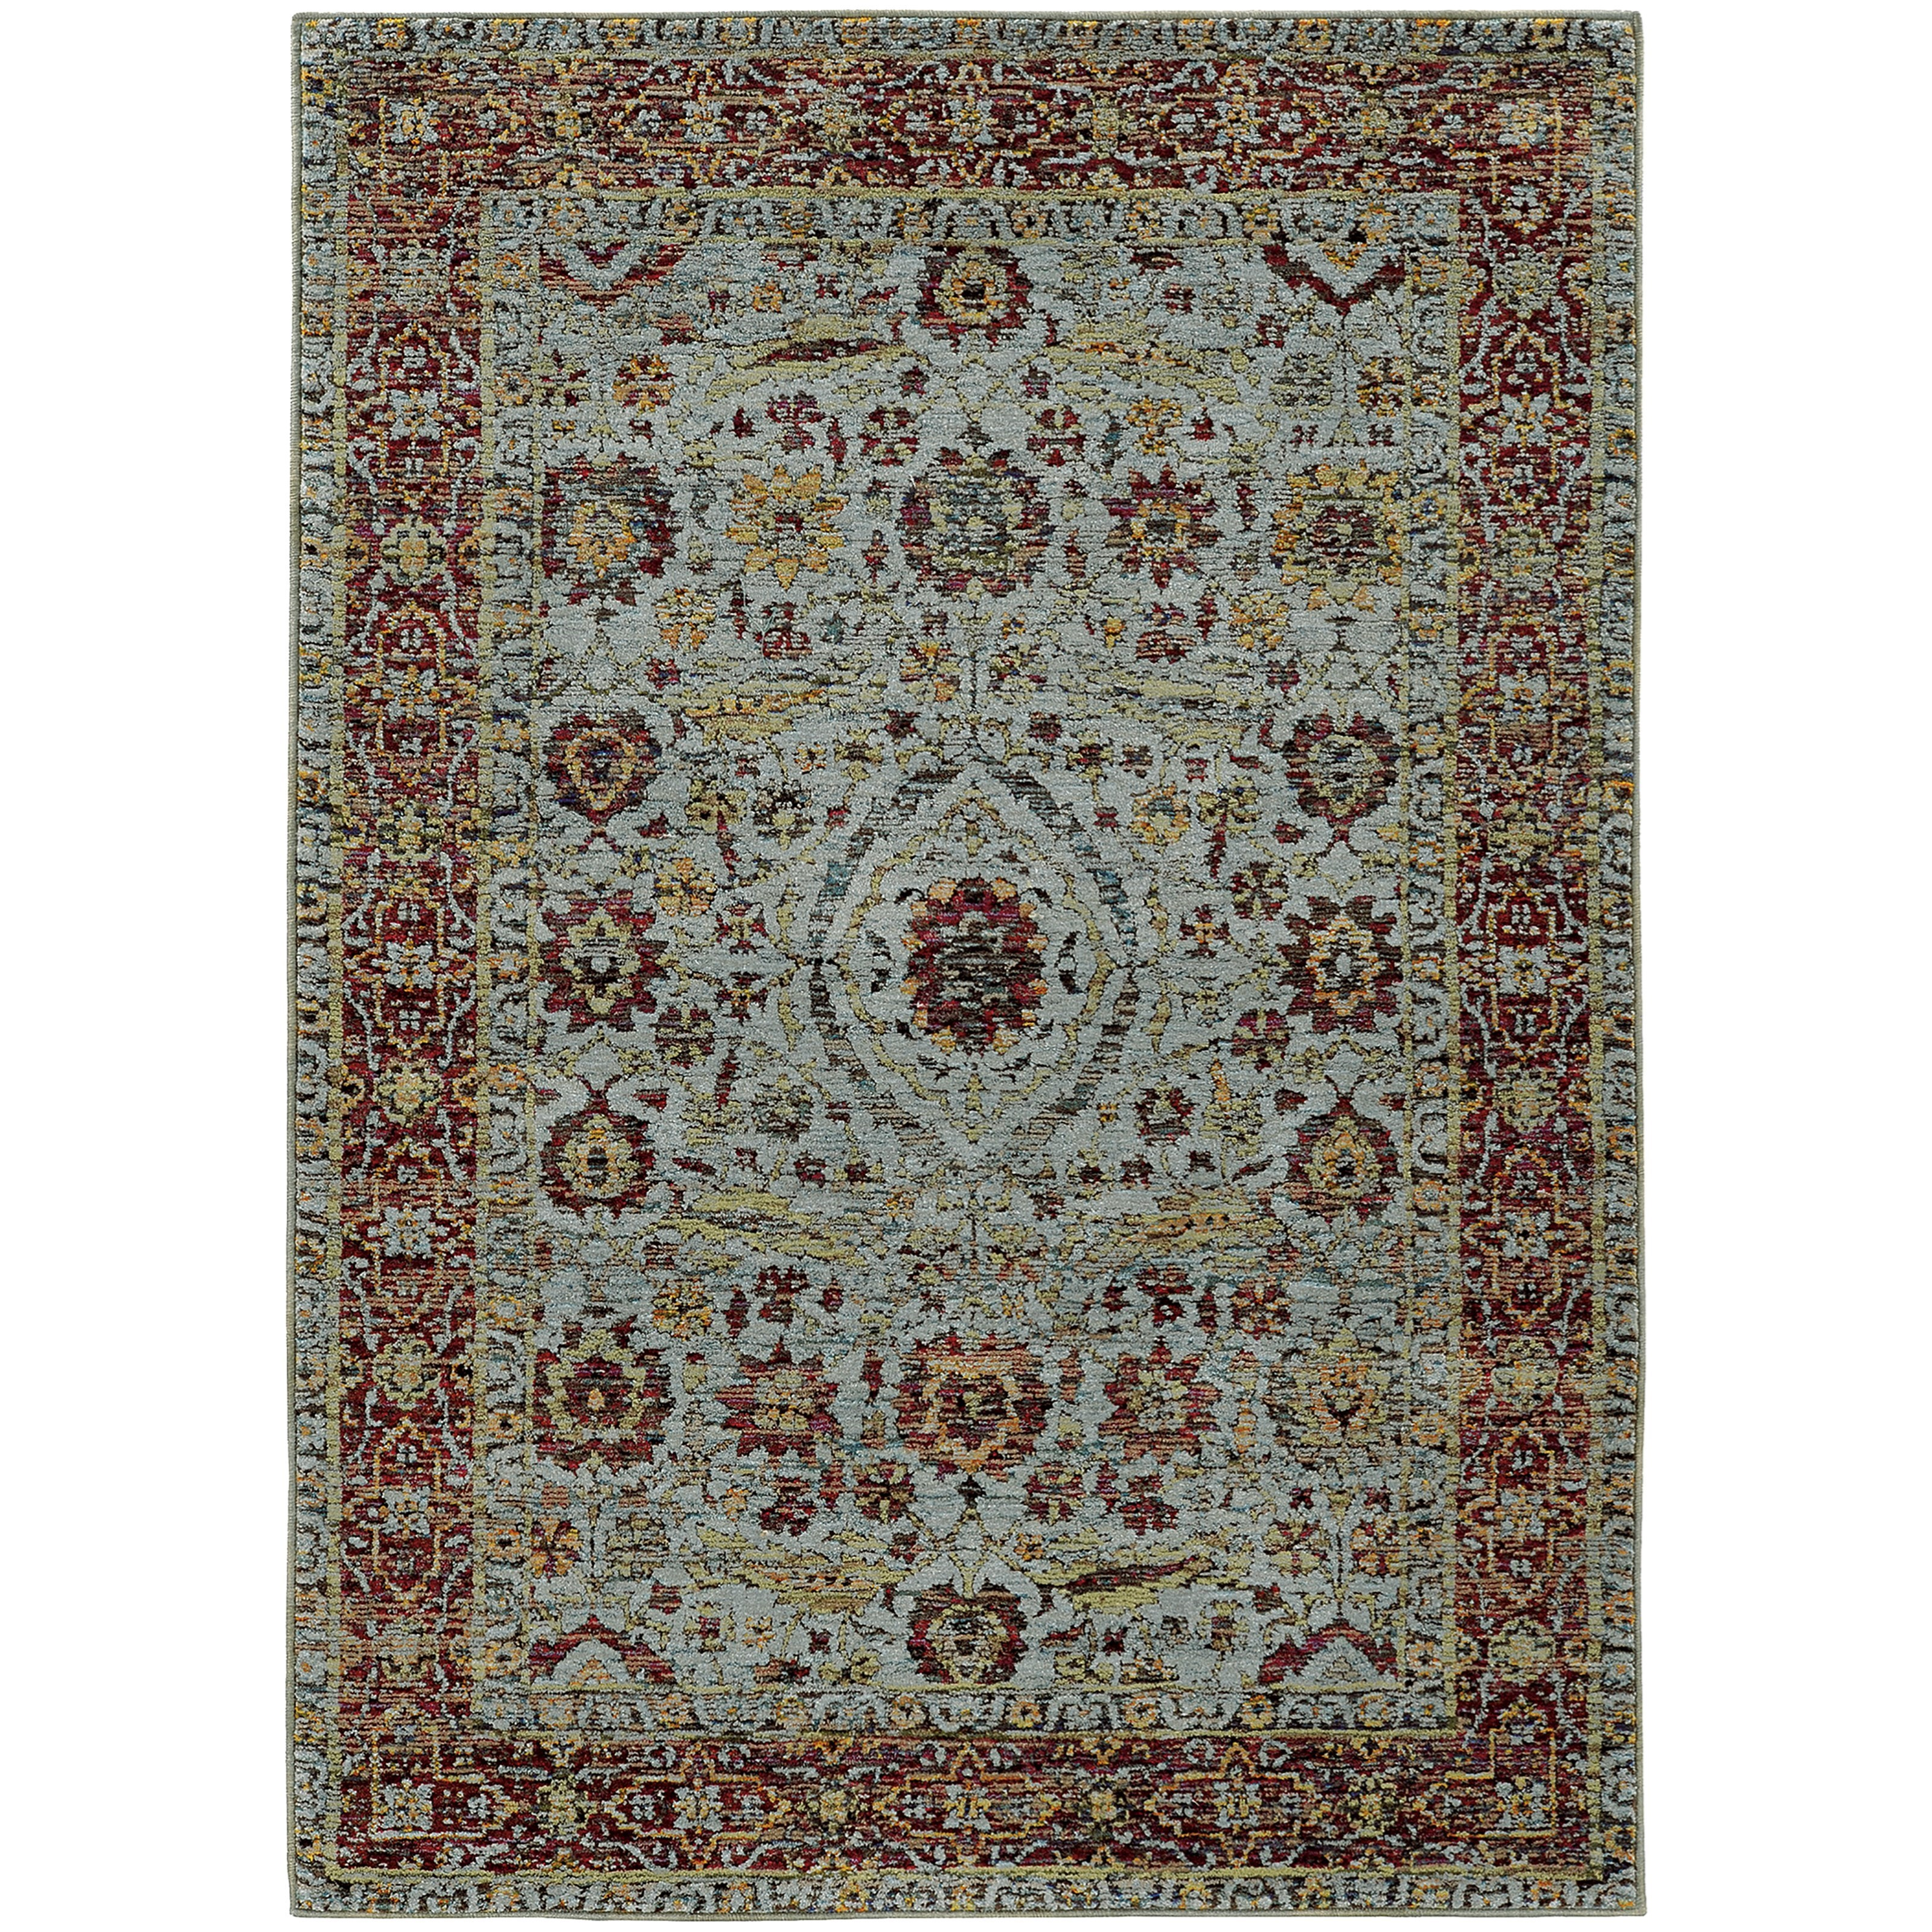 """Andorra 3' 3"""" X  5' 2"""" Casual Blue/ Red Rectangle Ru by Oriental Weavers at Steger's Furniture"""